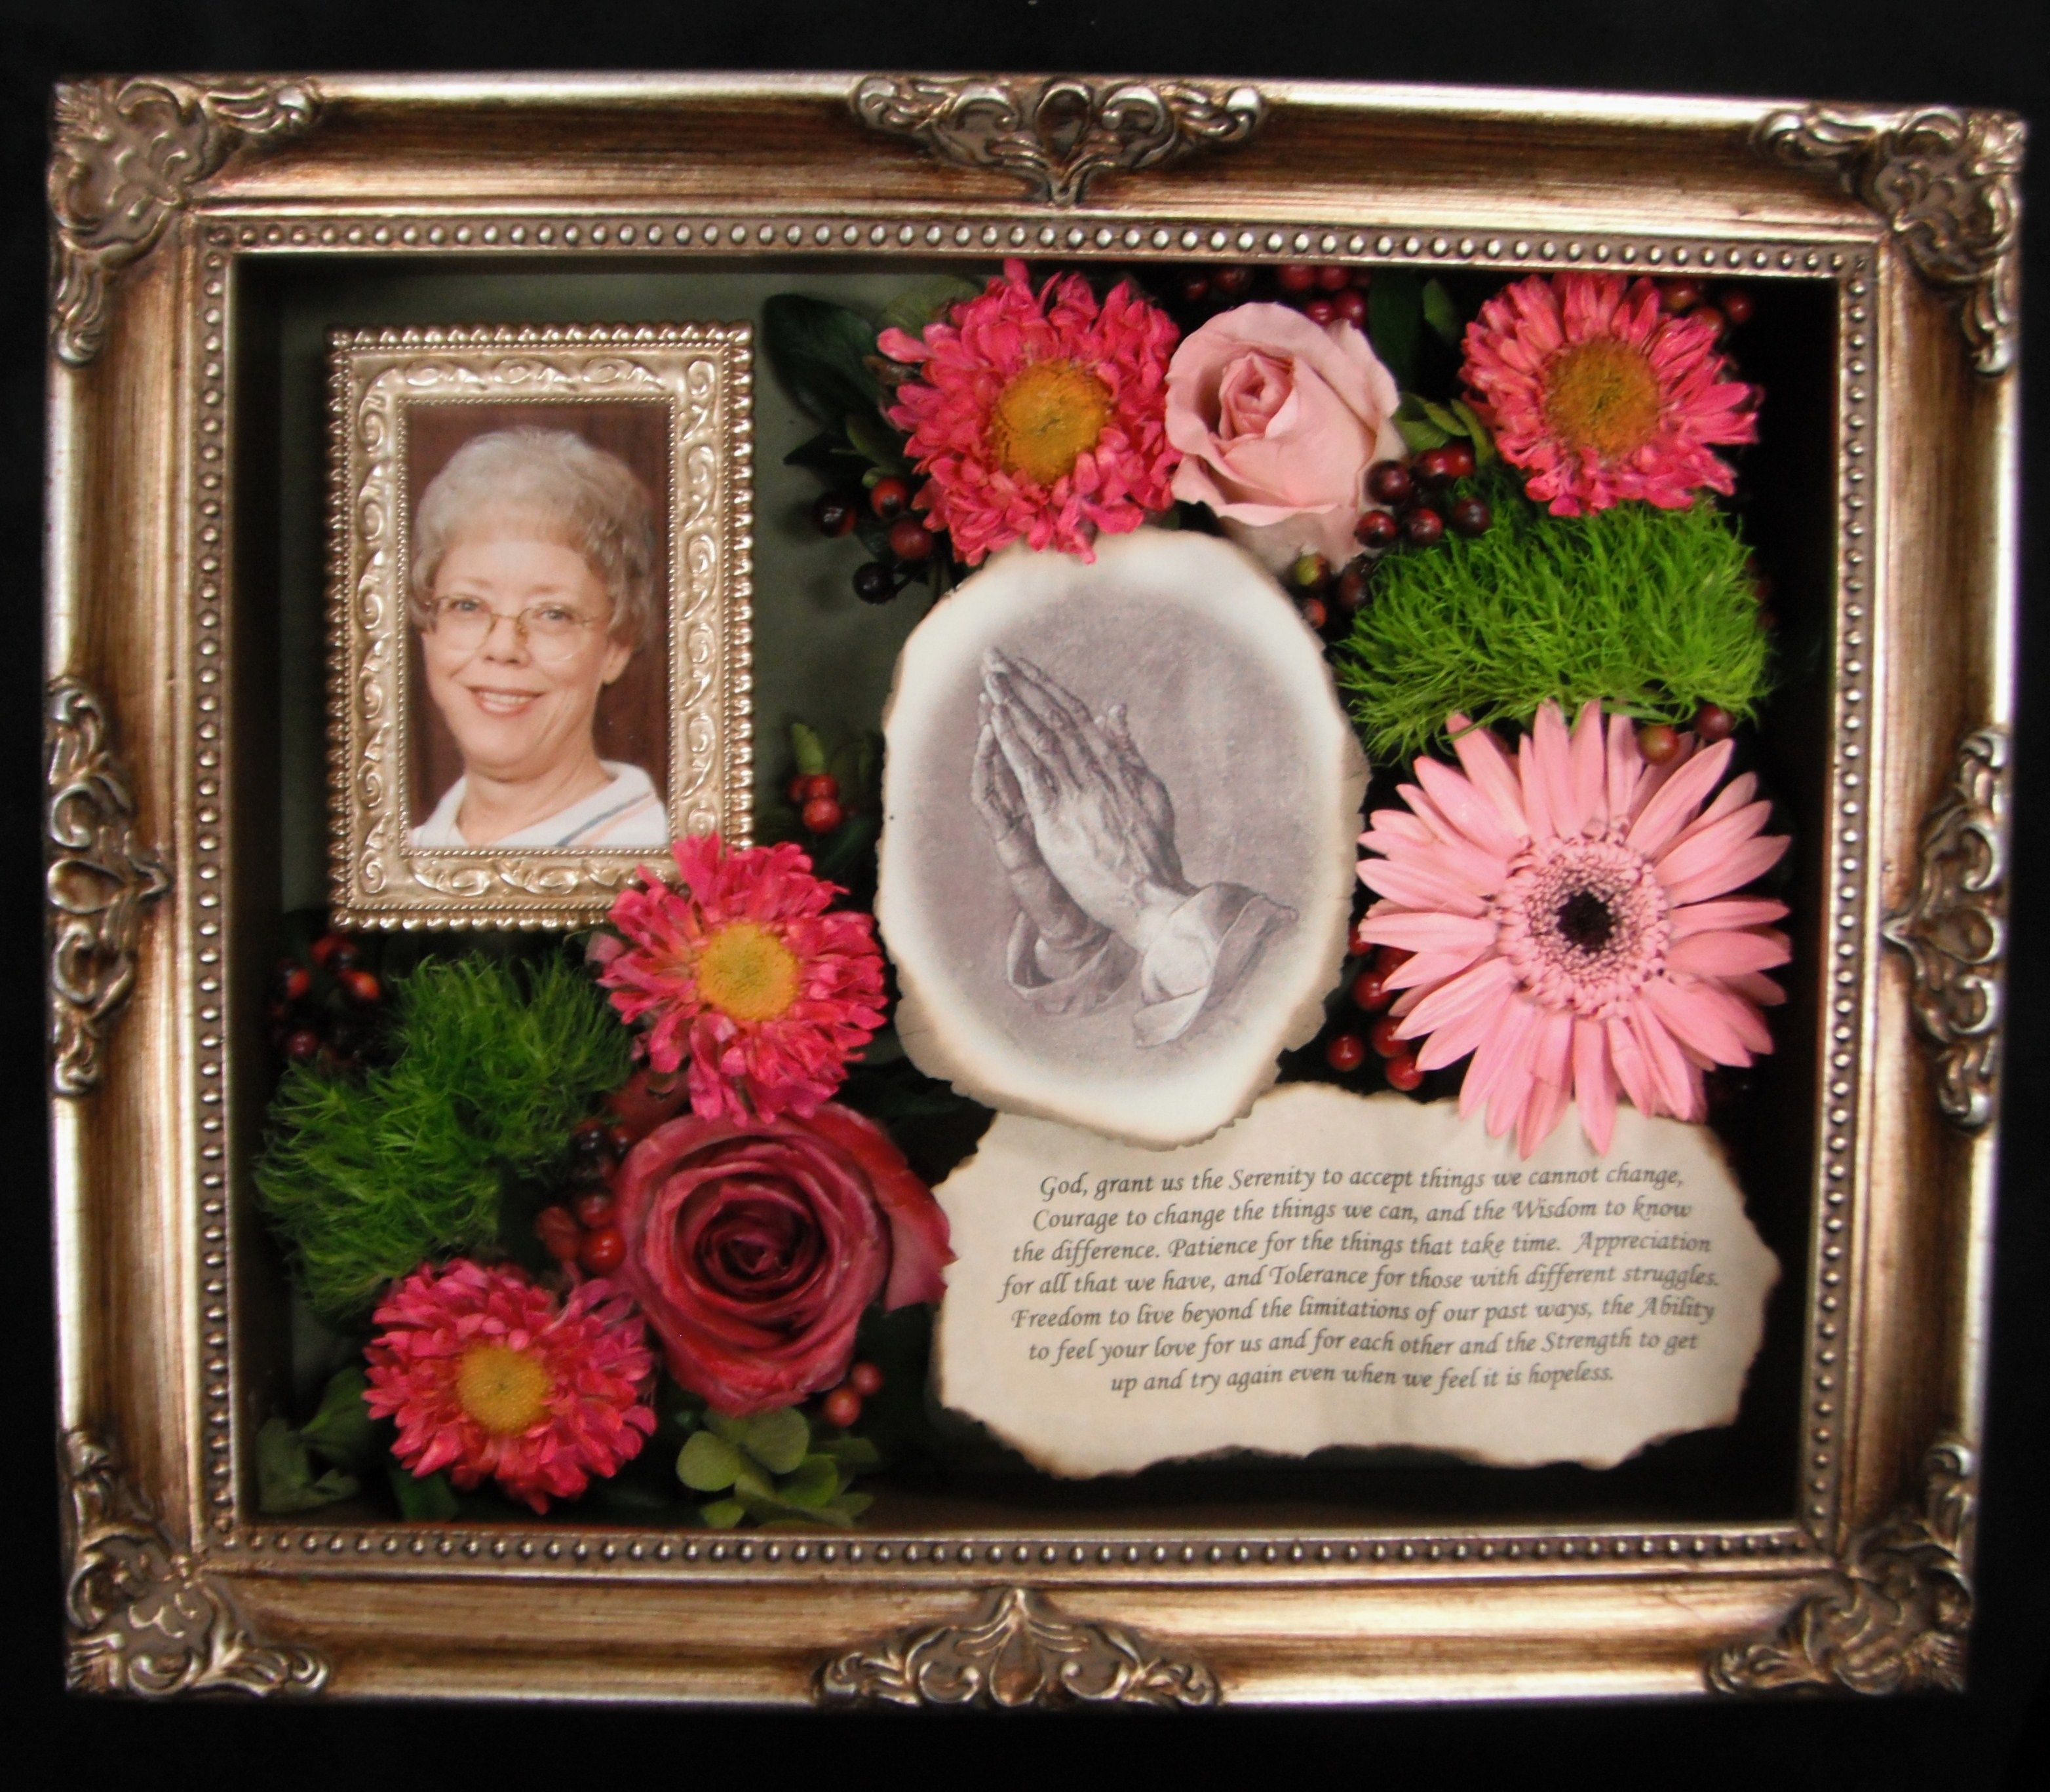 Preserved Memorial Flowers In Shadow Box Memorial Flowers Shadow Box How To Preserve Flowers